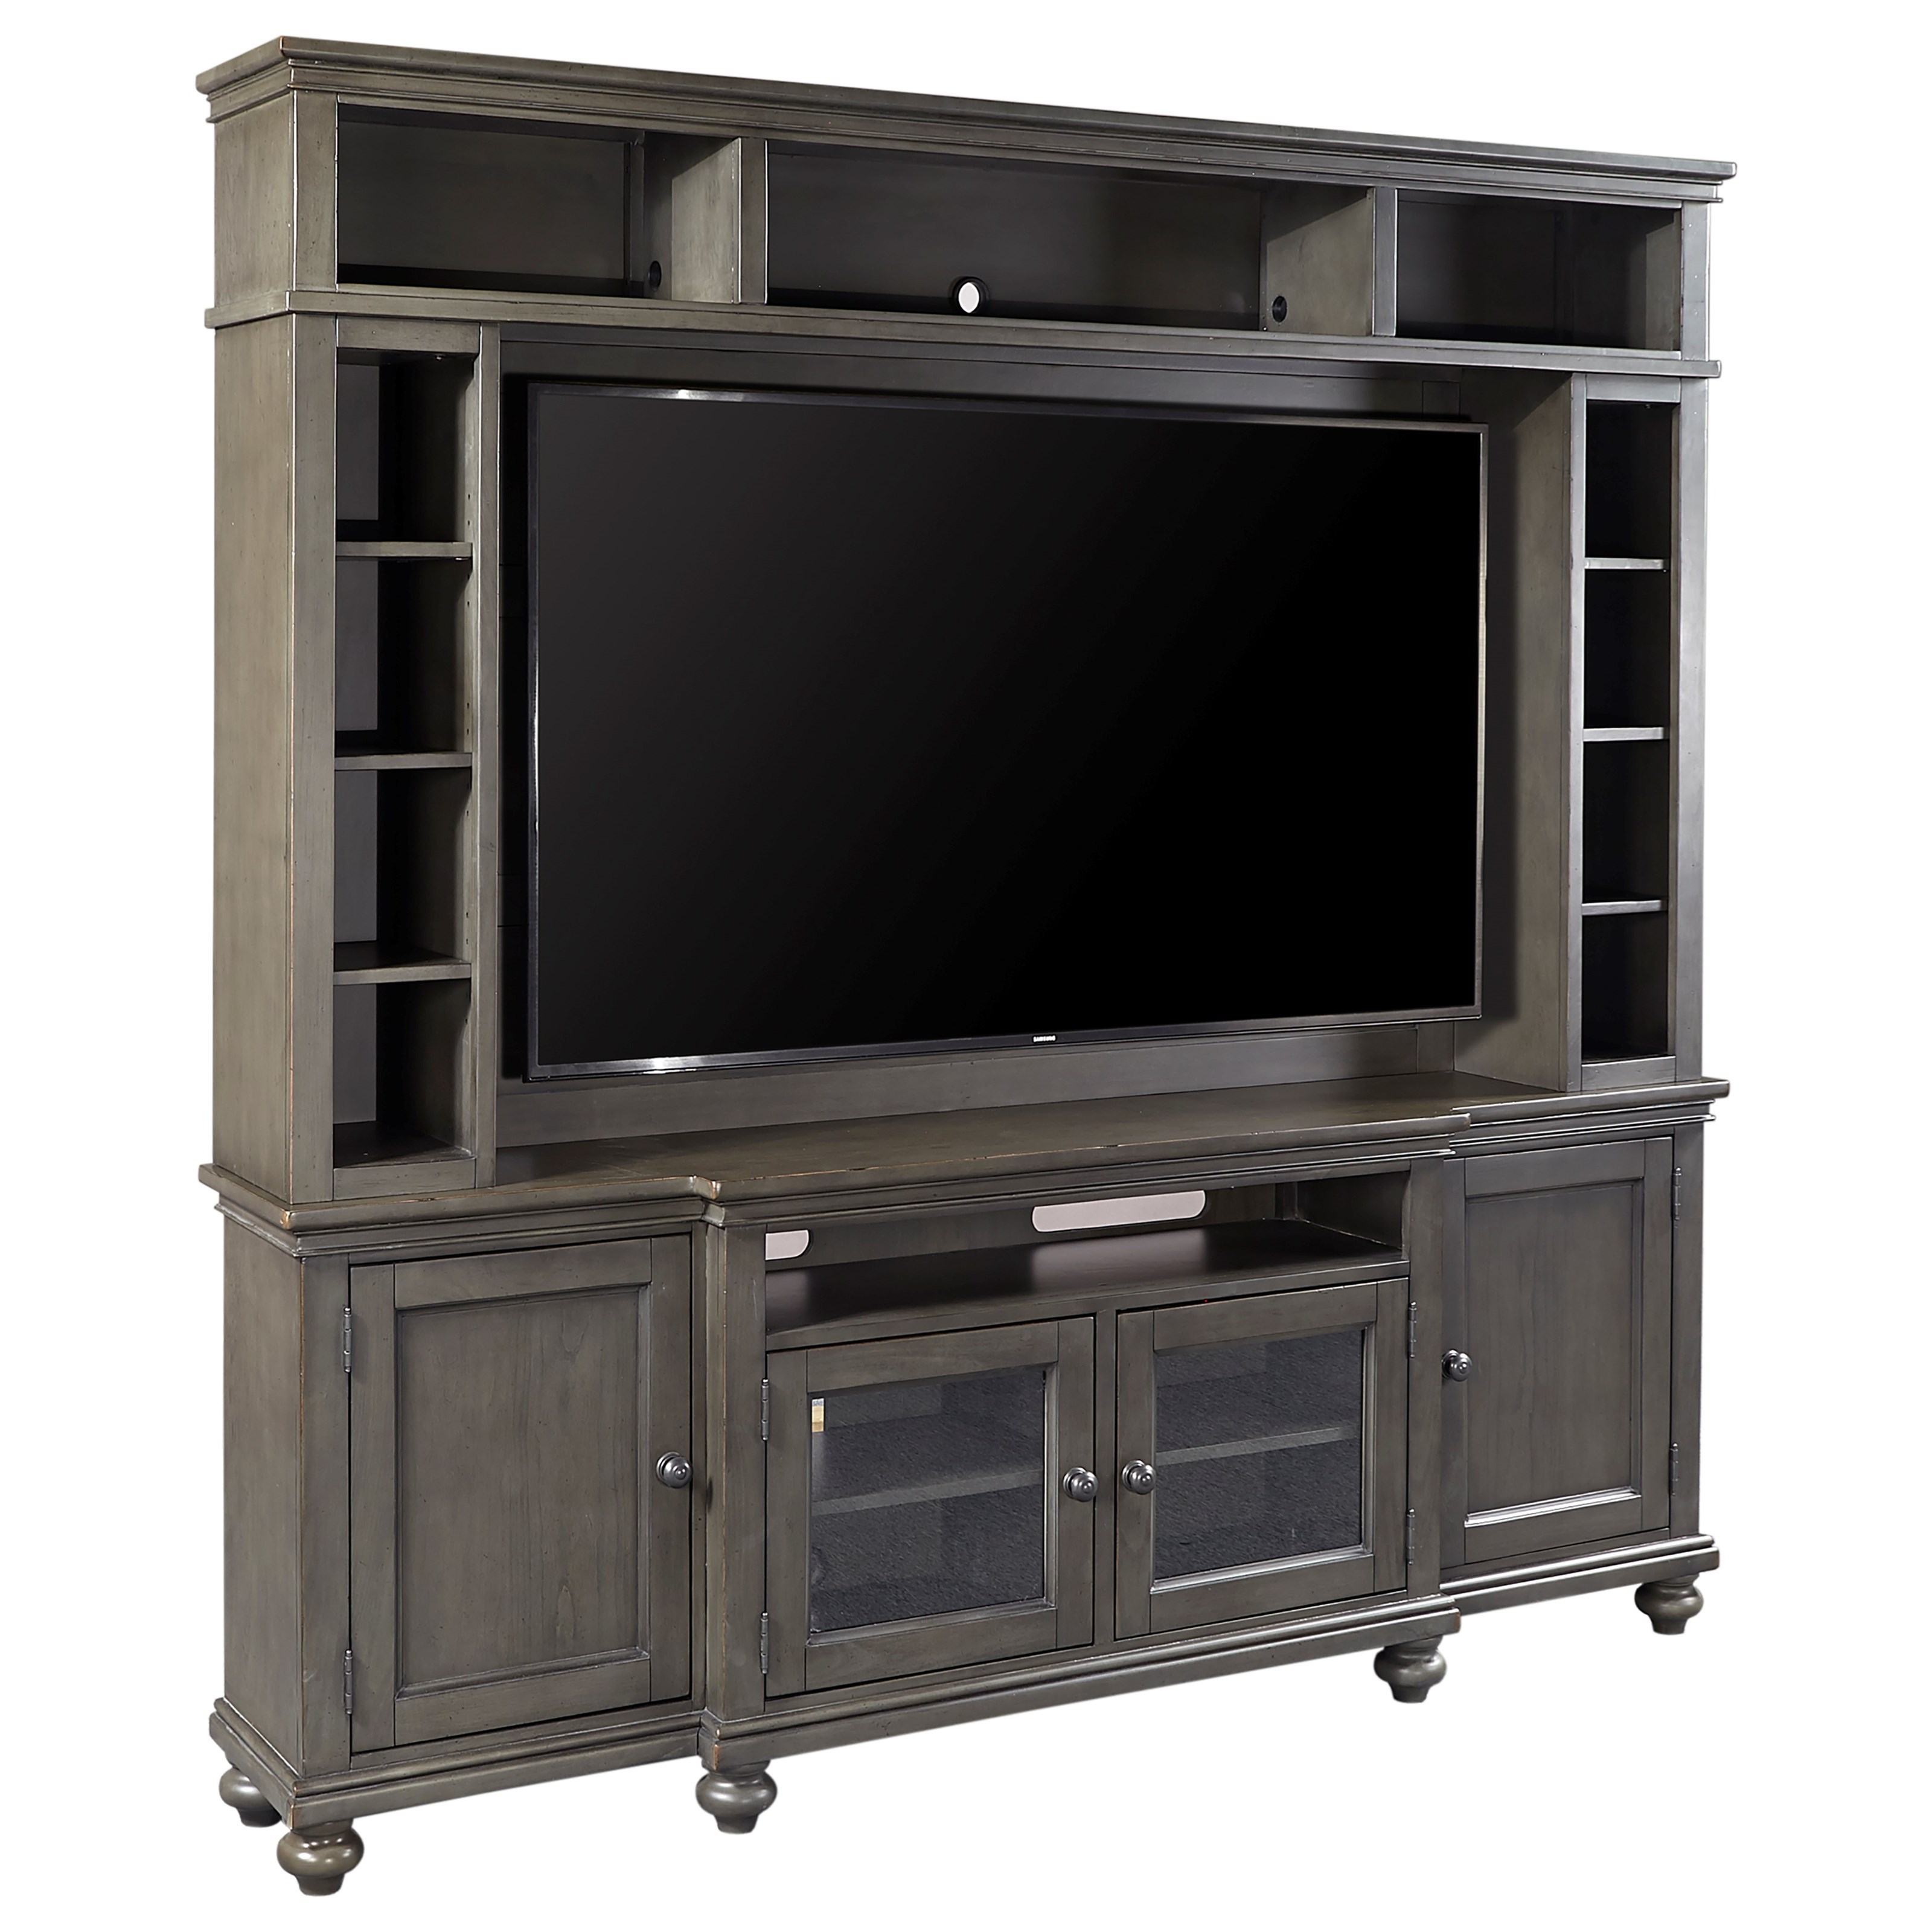 "Oxford 86"" Console and Hutch  by Aspenhome at Stoney Creek Furniture"